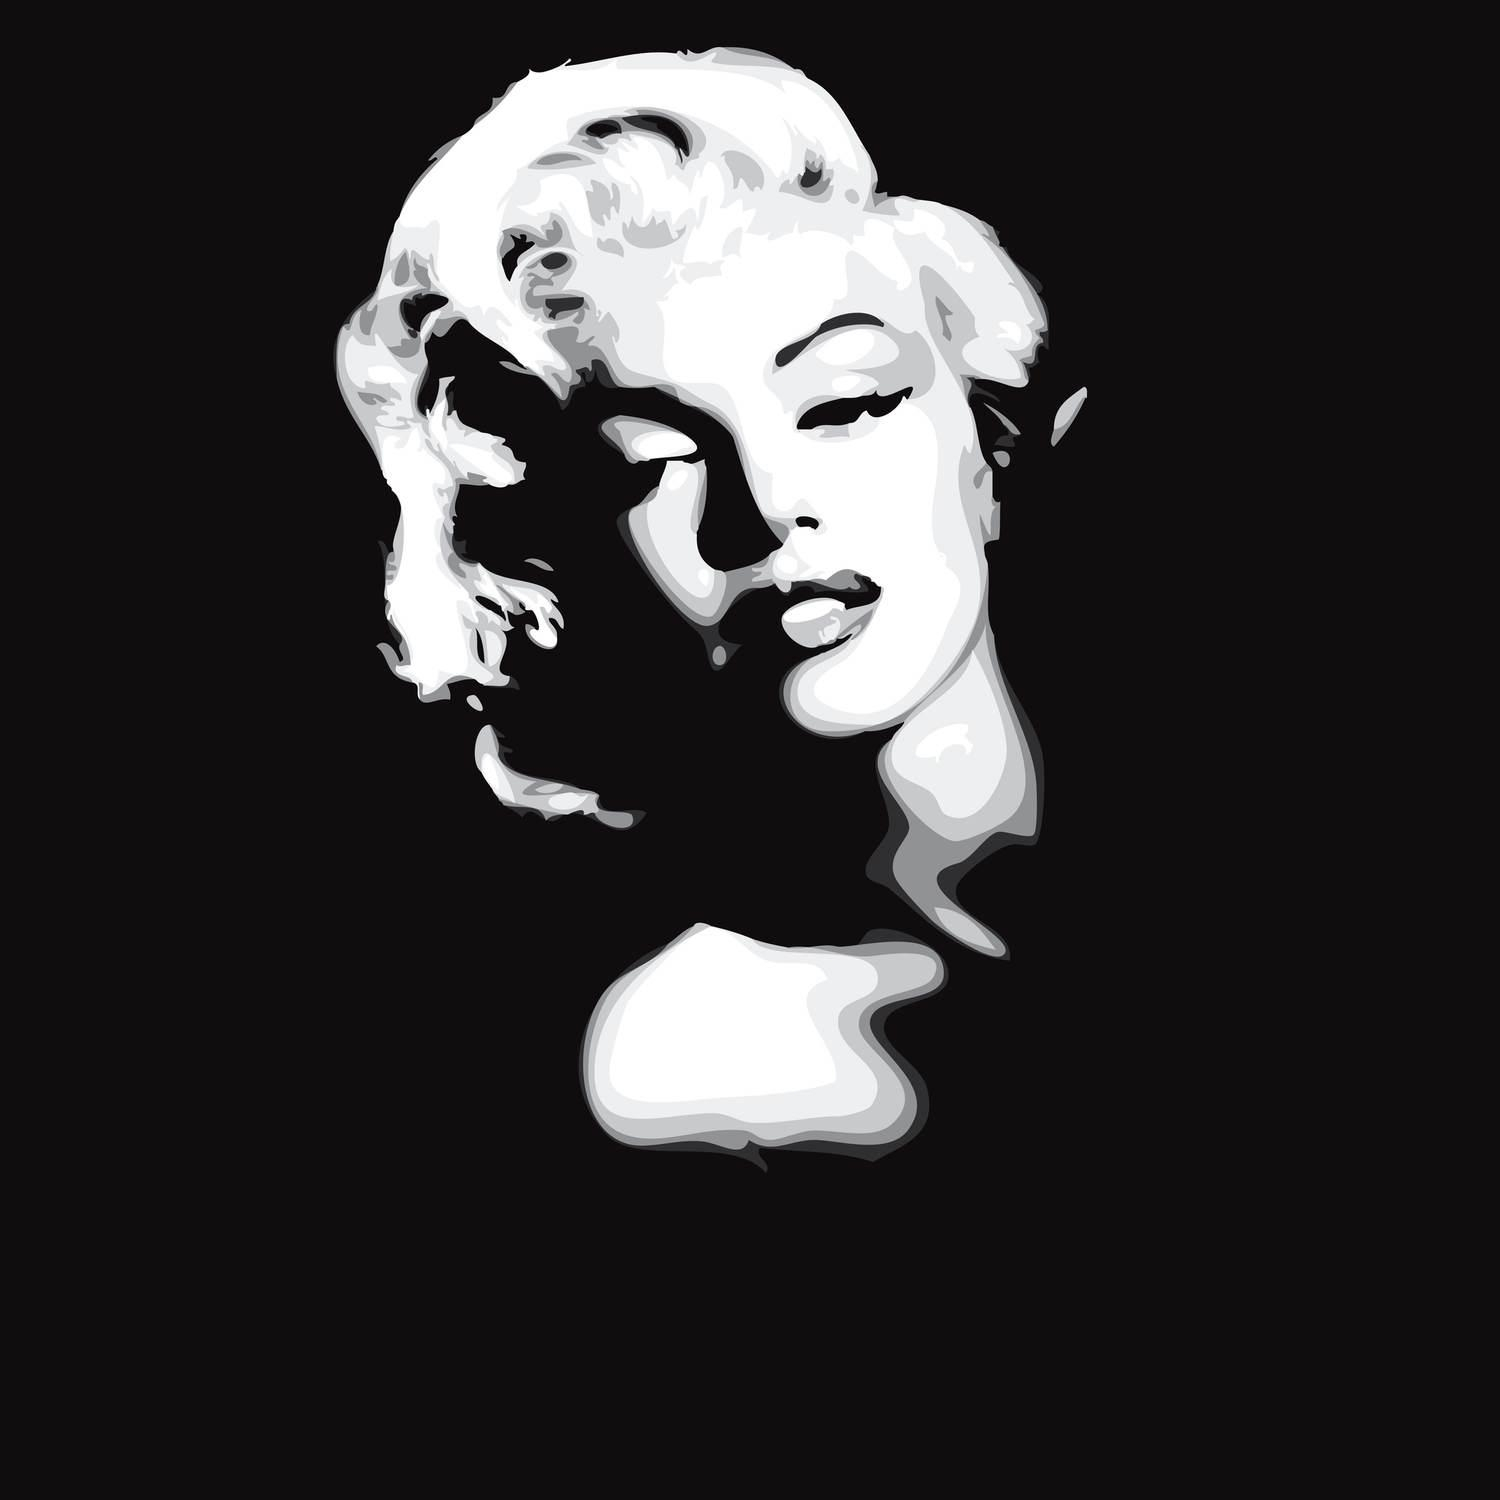 Wall Mural Marilyn Monroe Black And White | Norma – Happywall With Marilyn Monroe Black And White Wall Art (View 17 of 20)